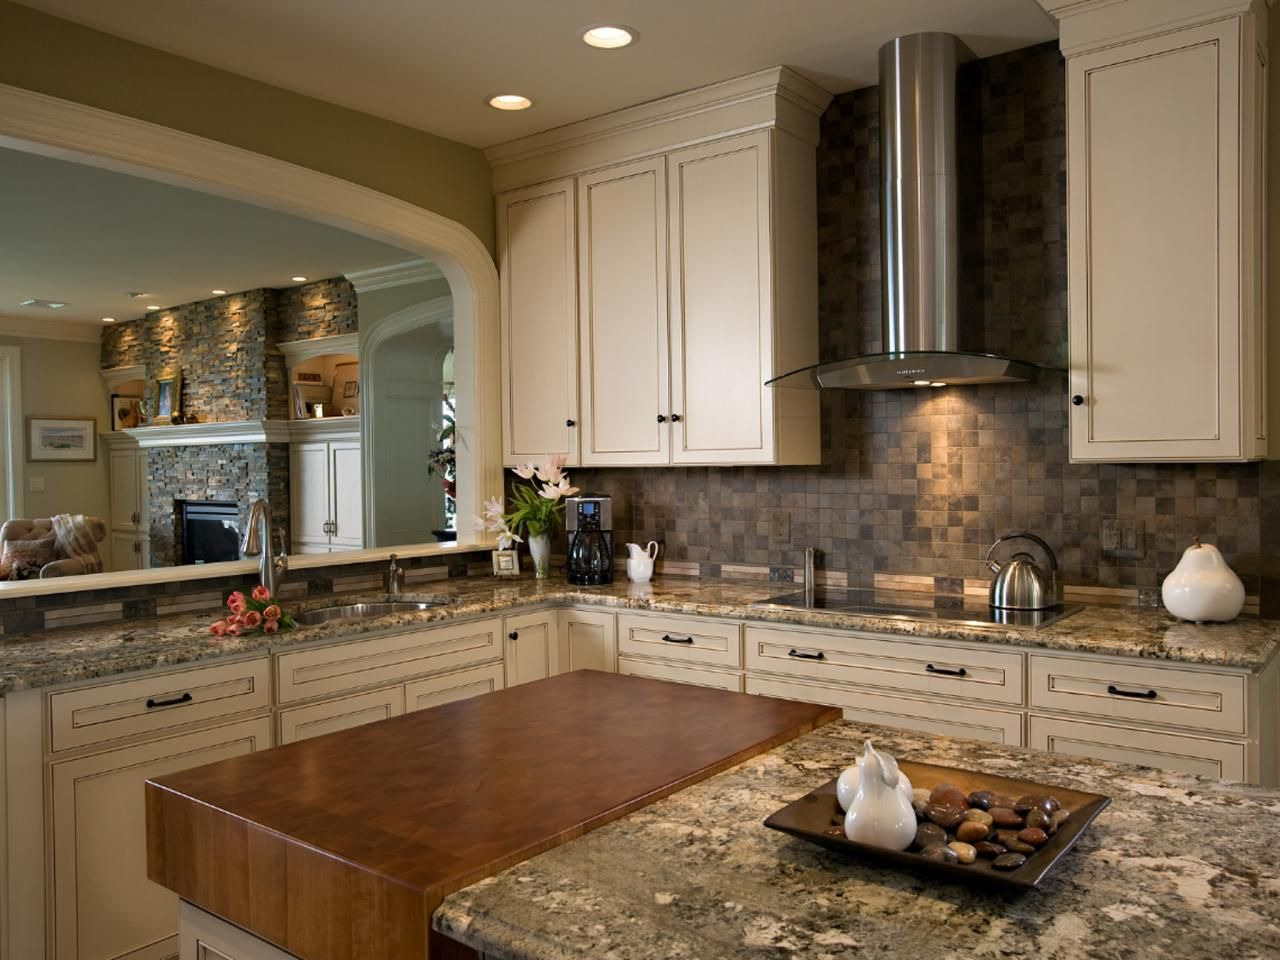 The Combination Of Earthy Tones And Textures Of The Granite